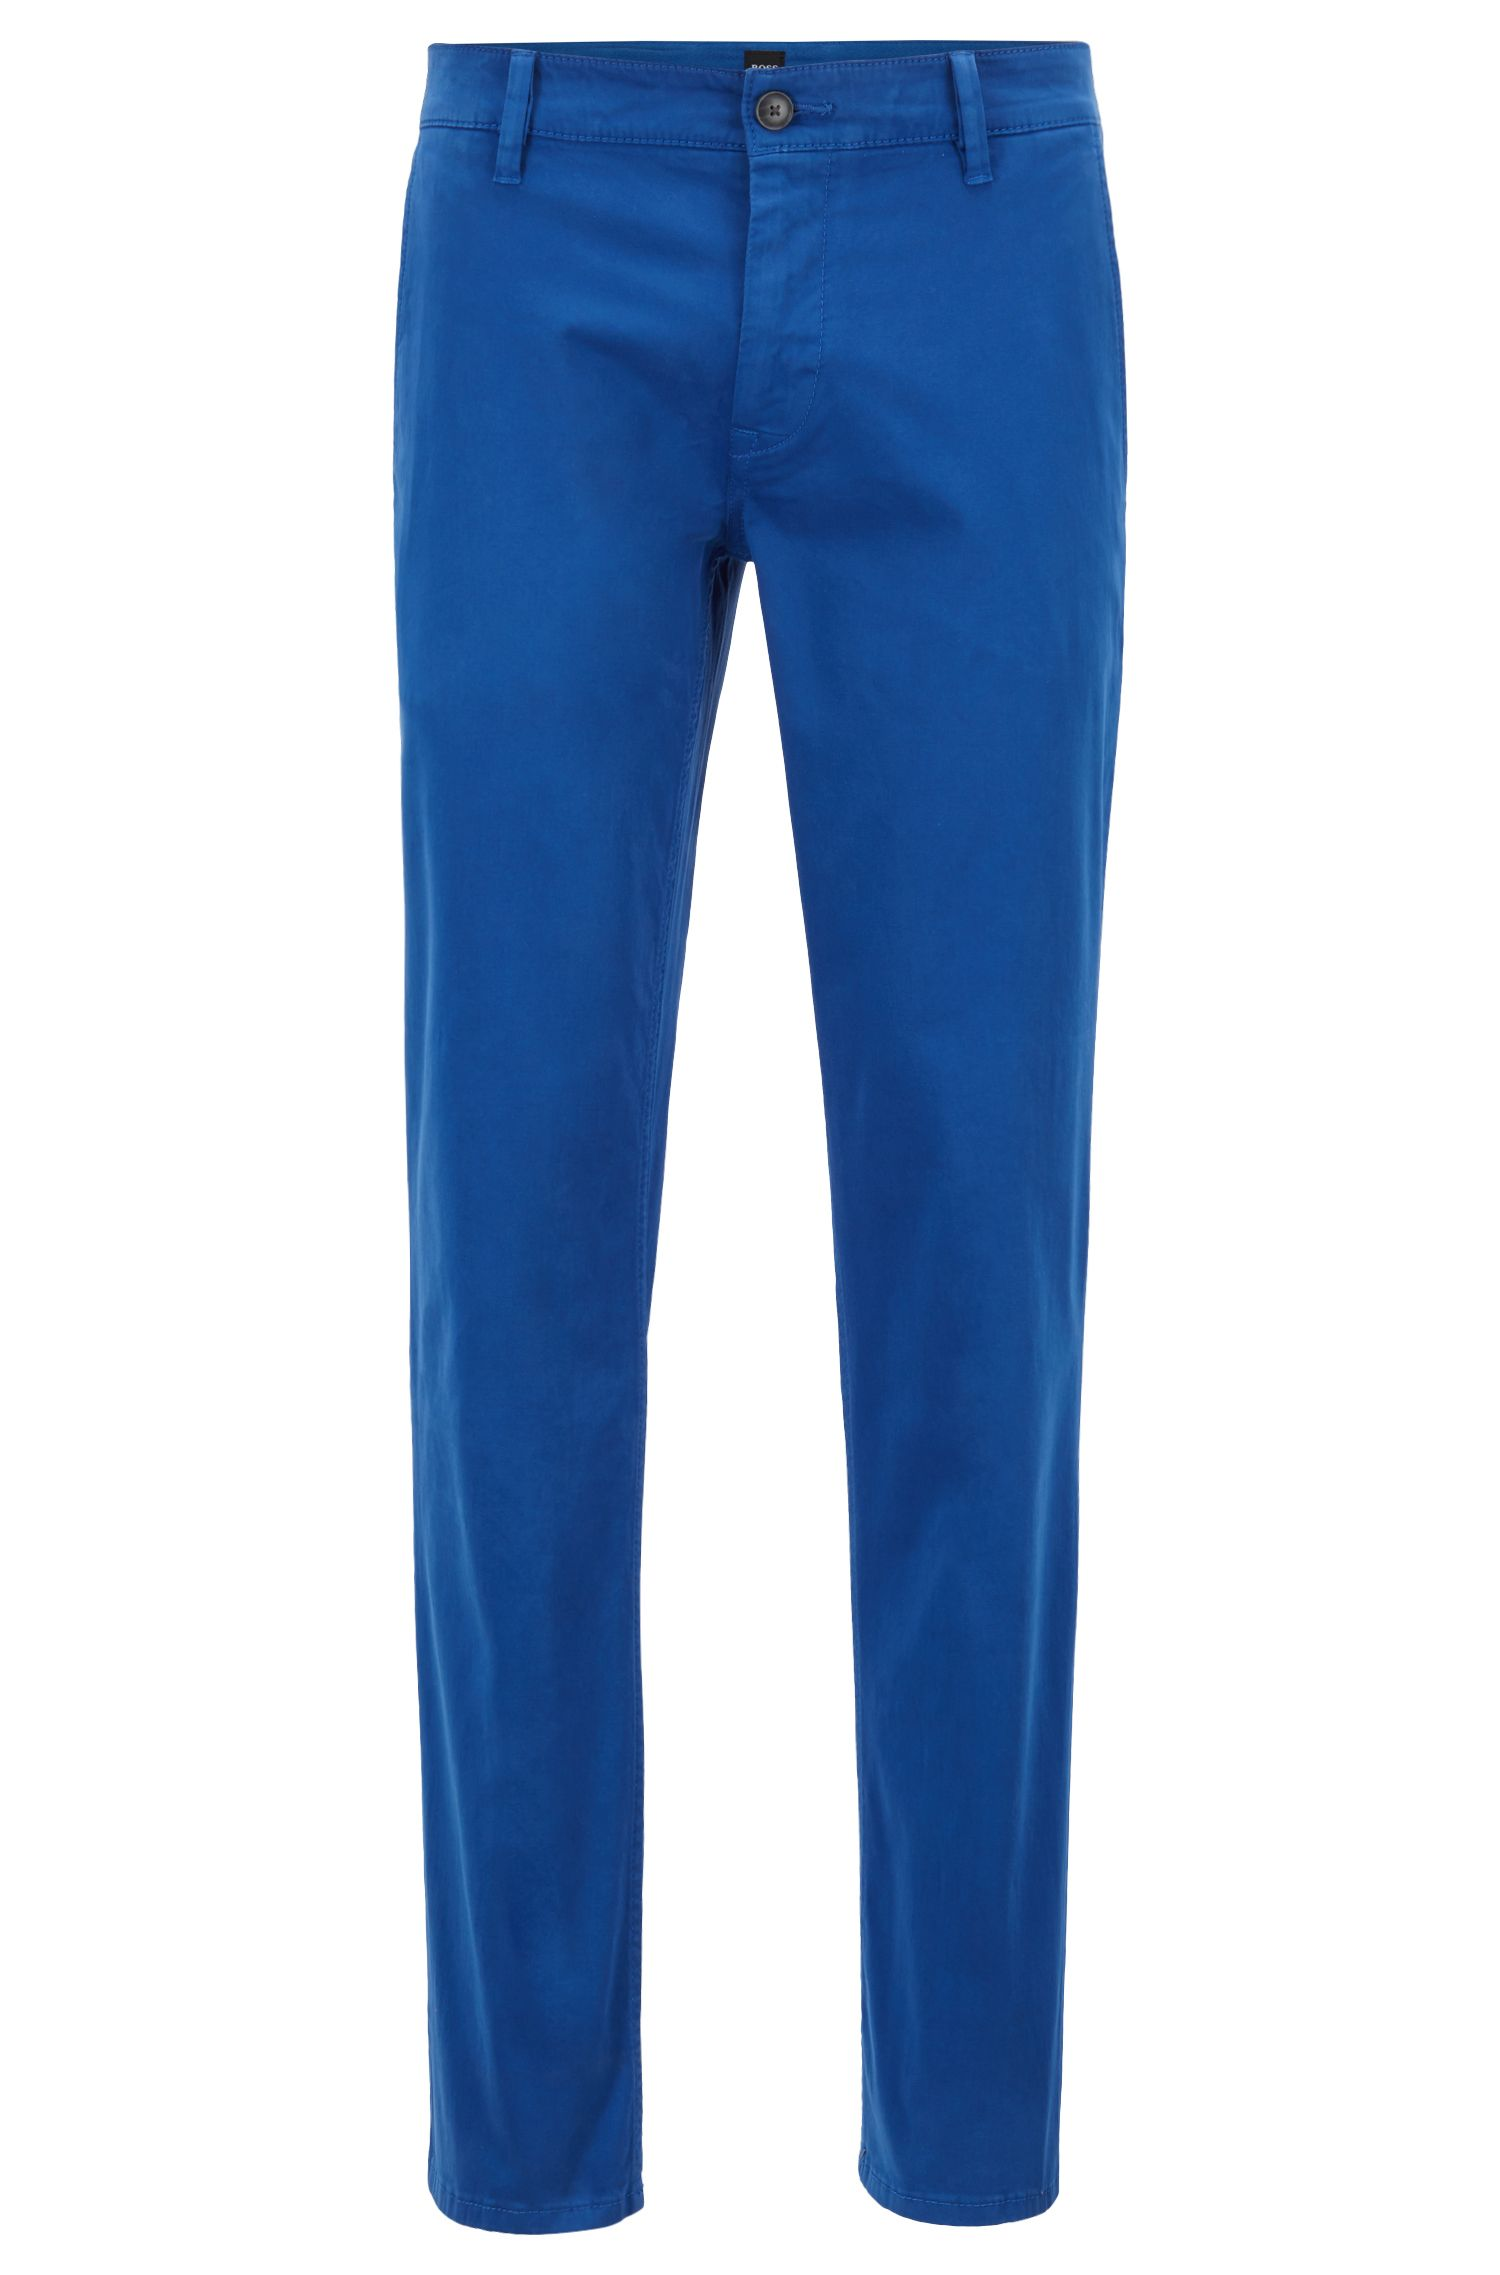 Chino casual Regular Fit en coton stretch brossé, Bleu